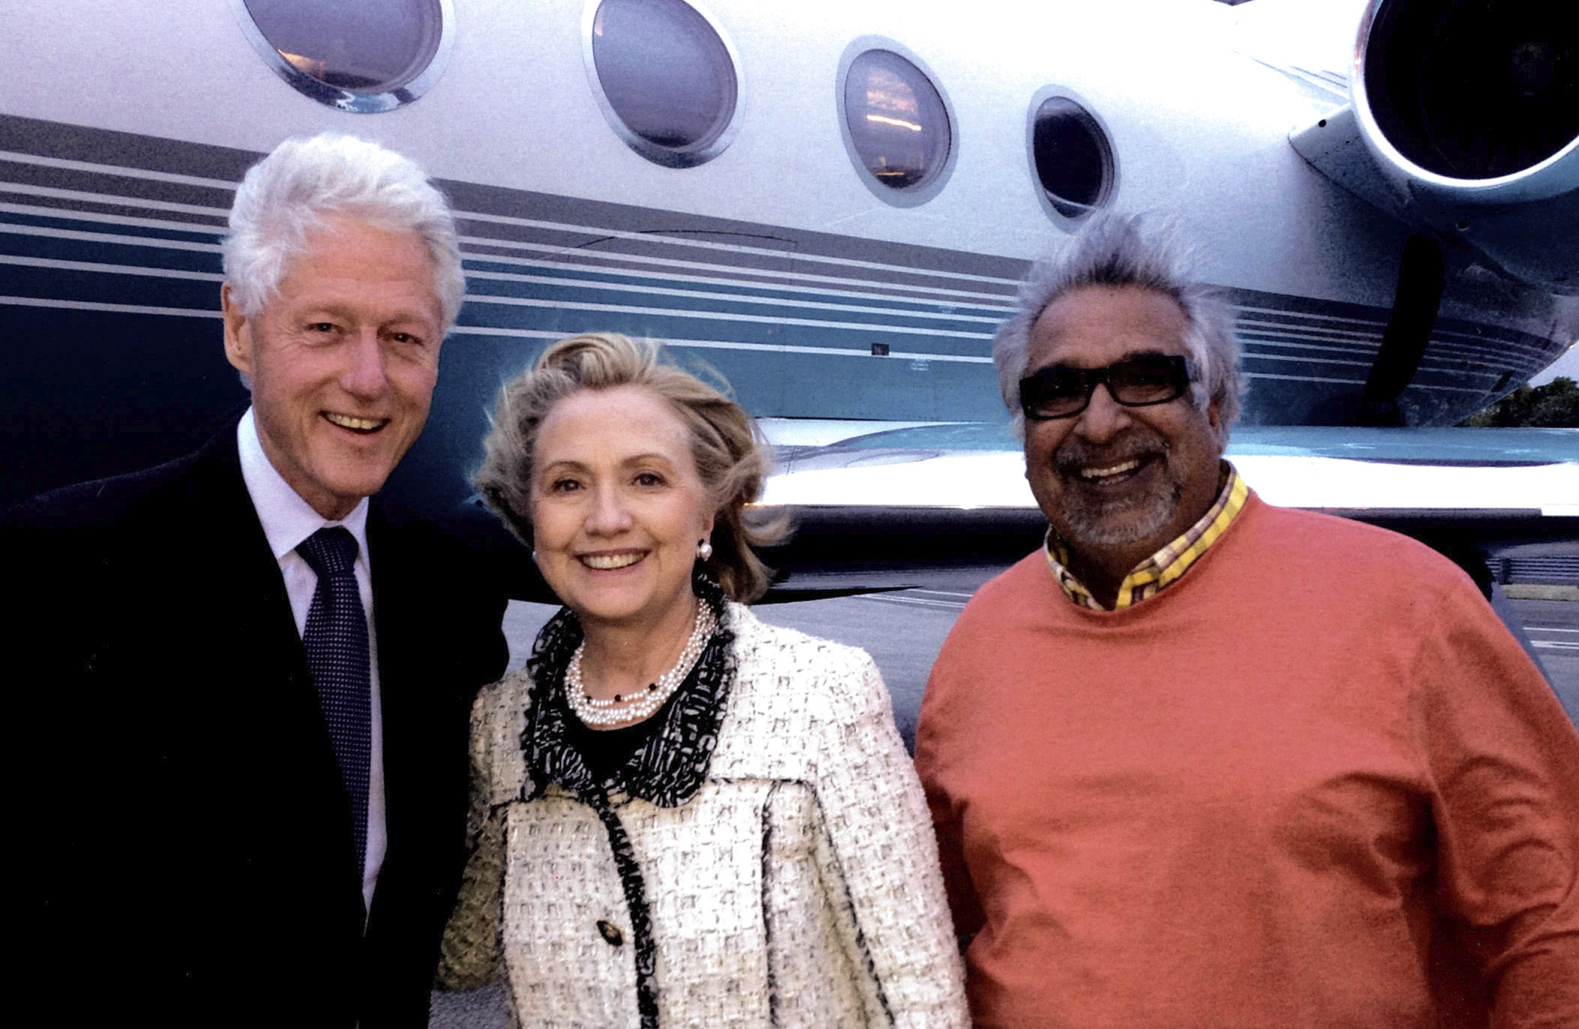 Vin with Clintons